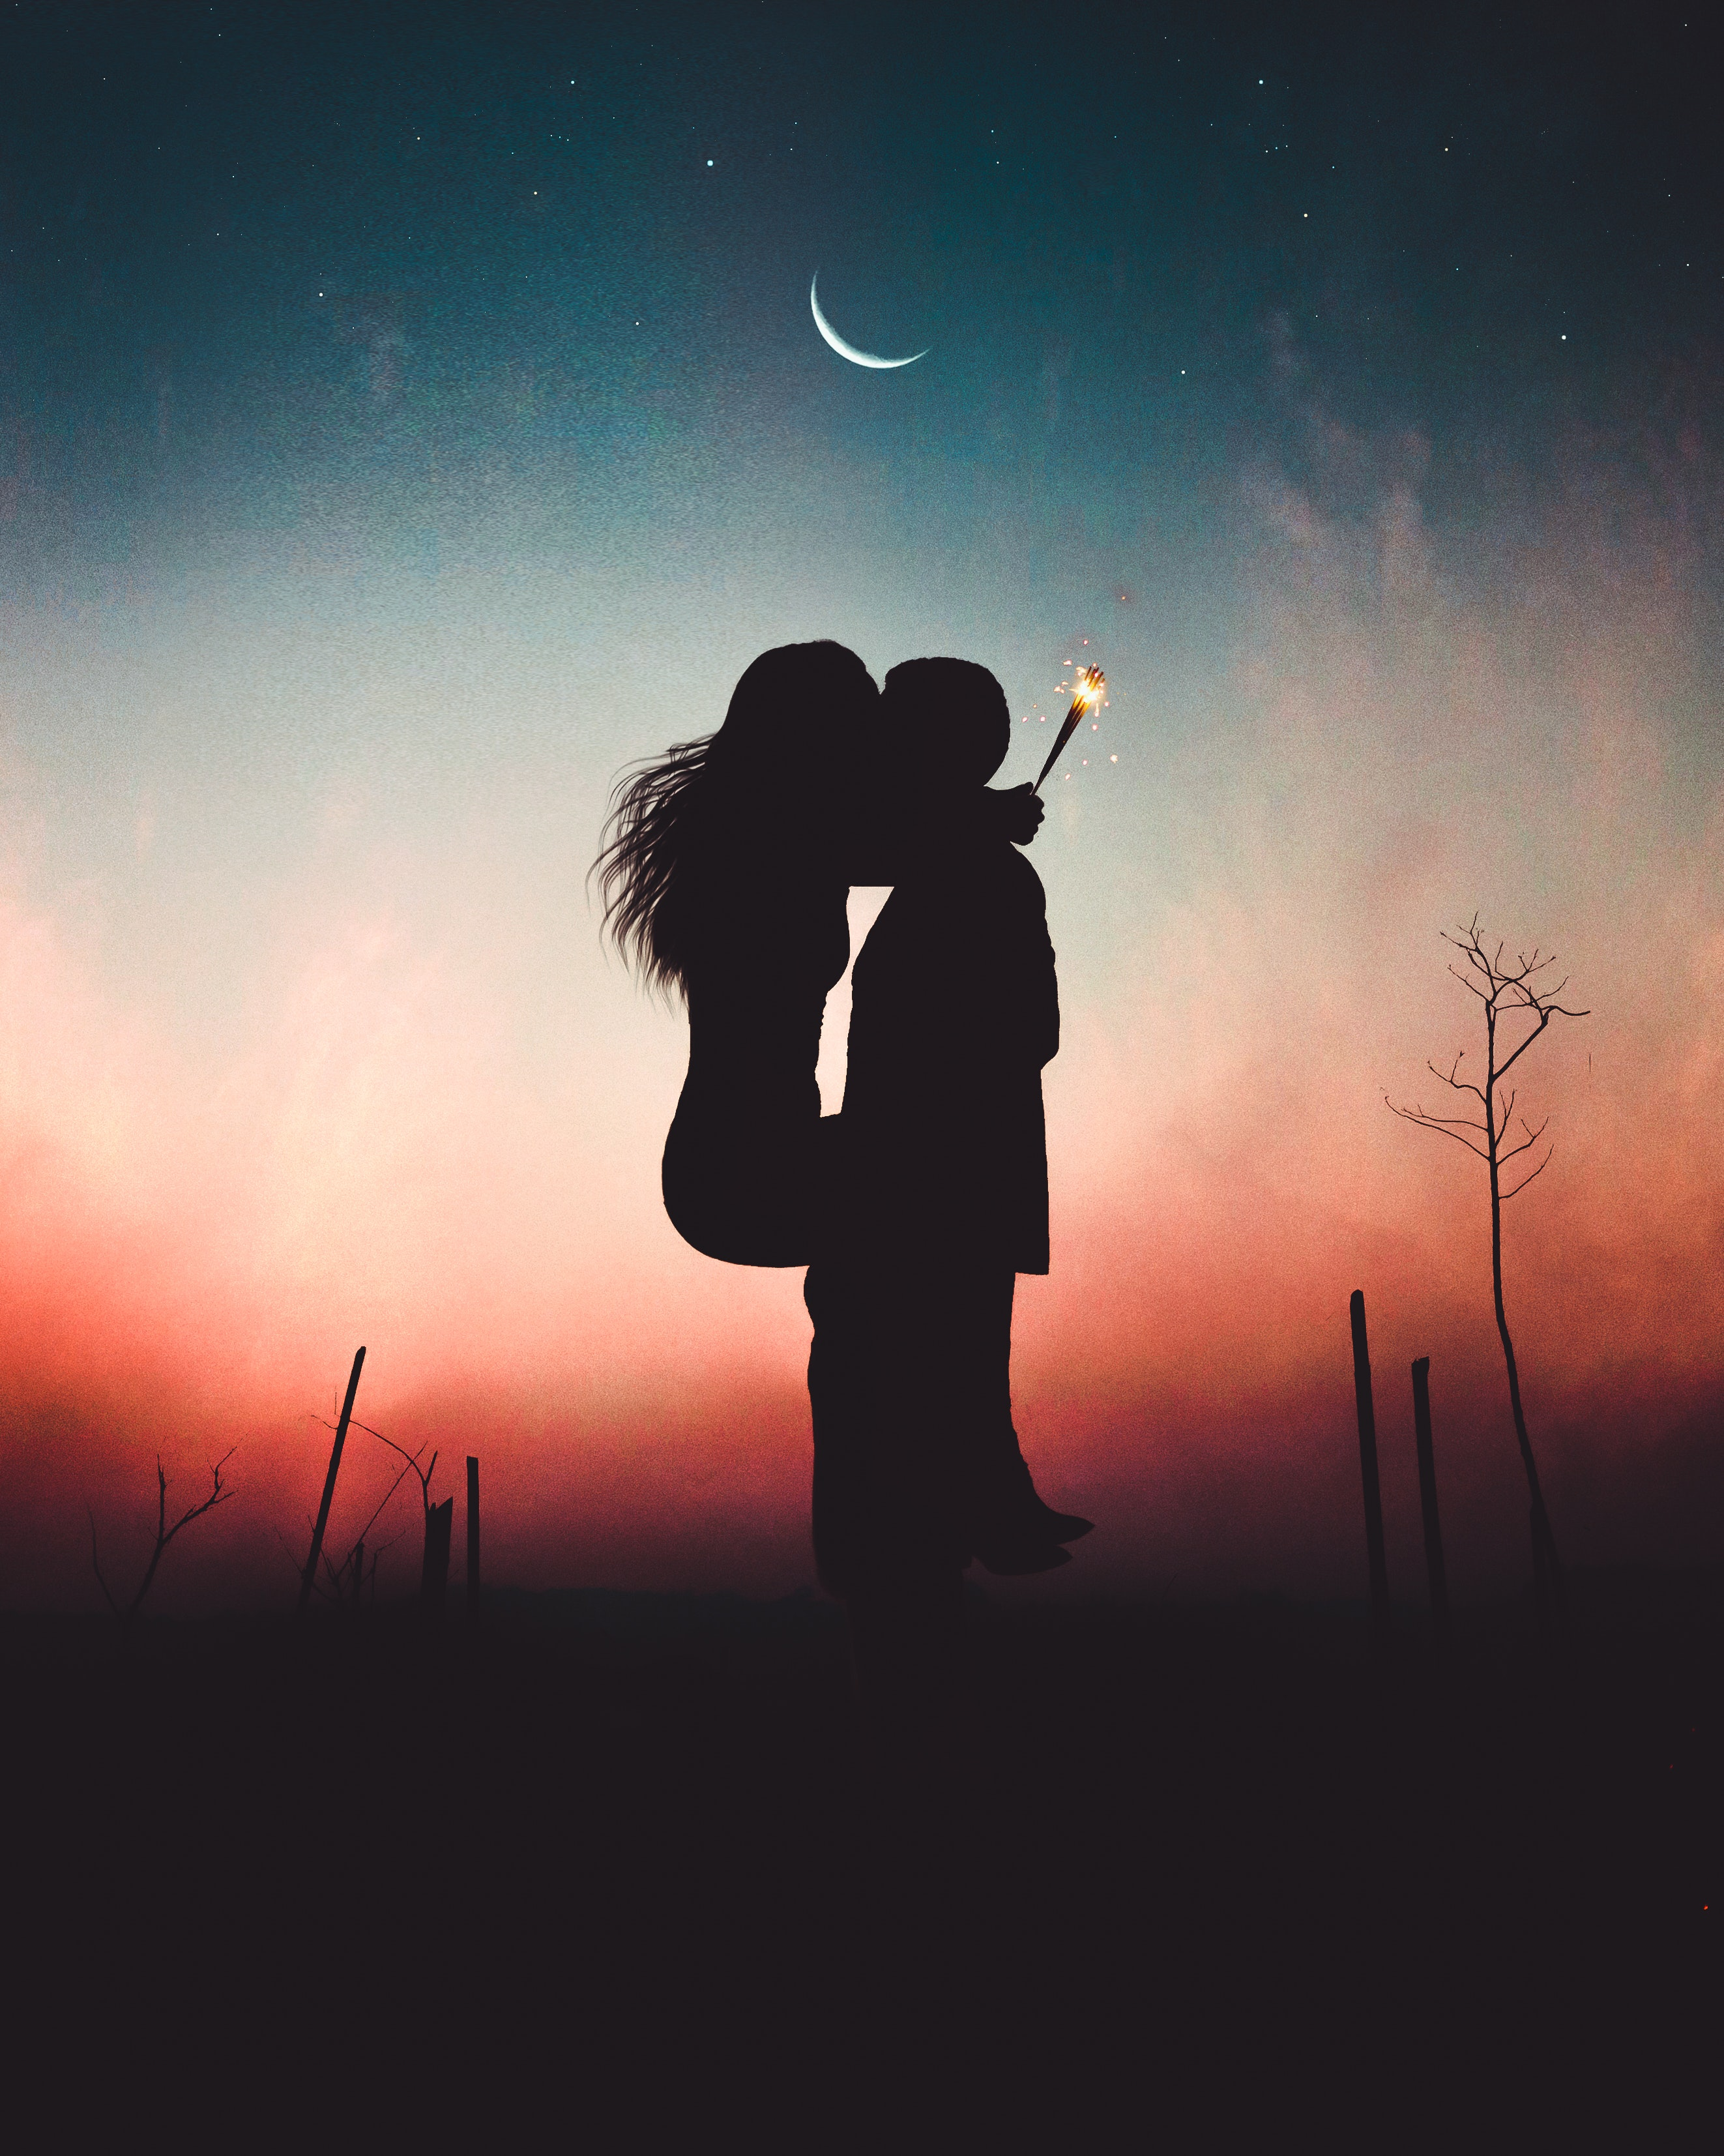 Silhouette of Kissing Couple · Free Stock Photo